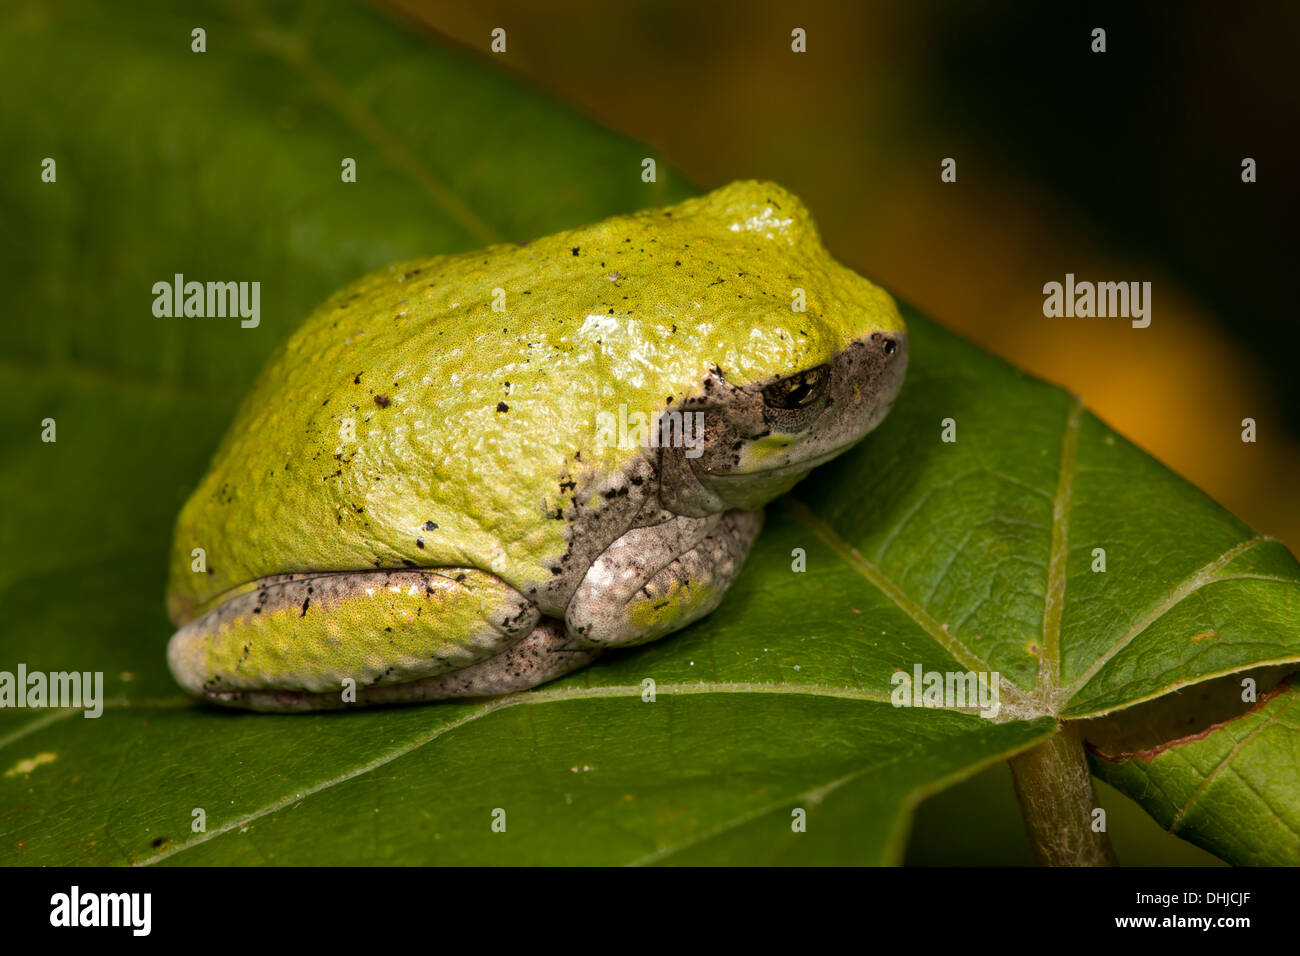 A Gray Treefrog (Hyla versicolor) sits on a leaf. - Stock Image